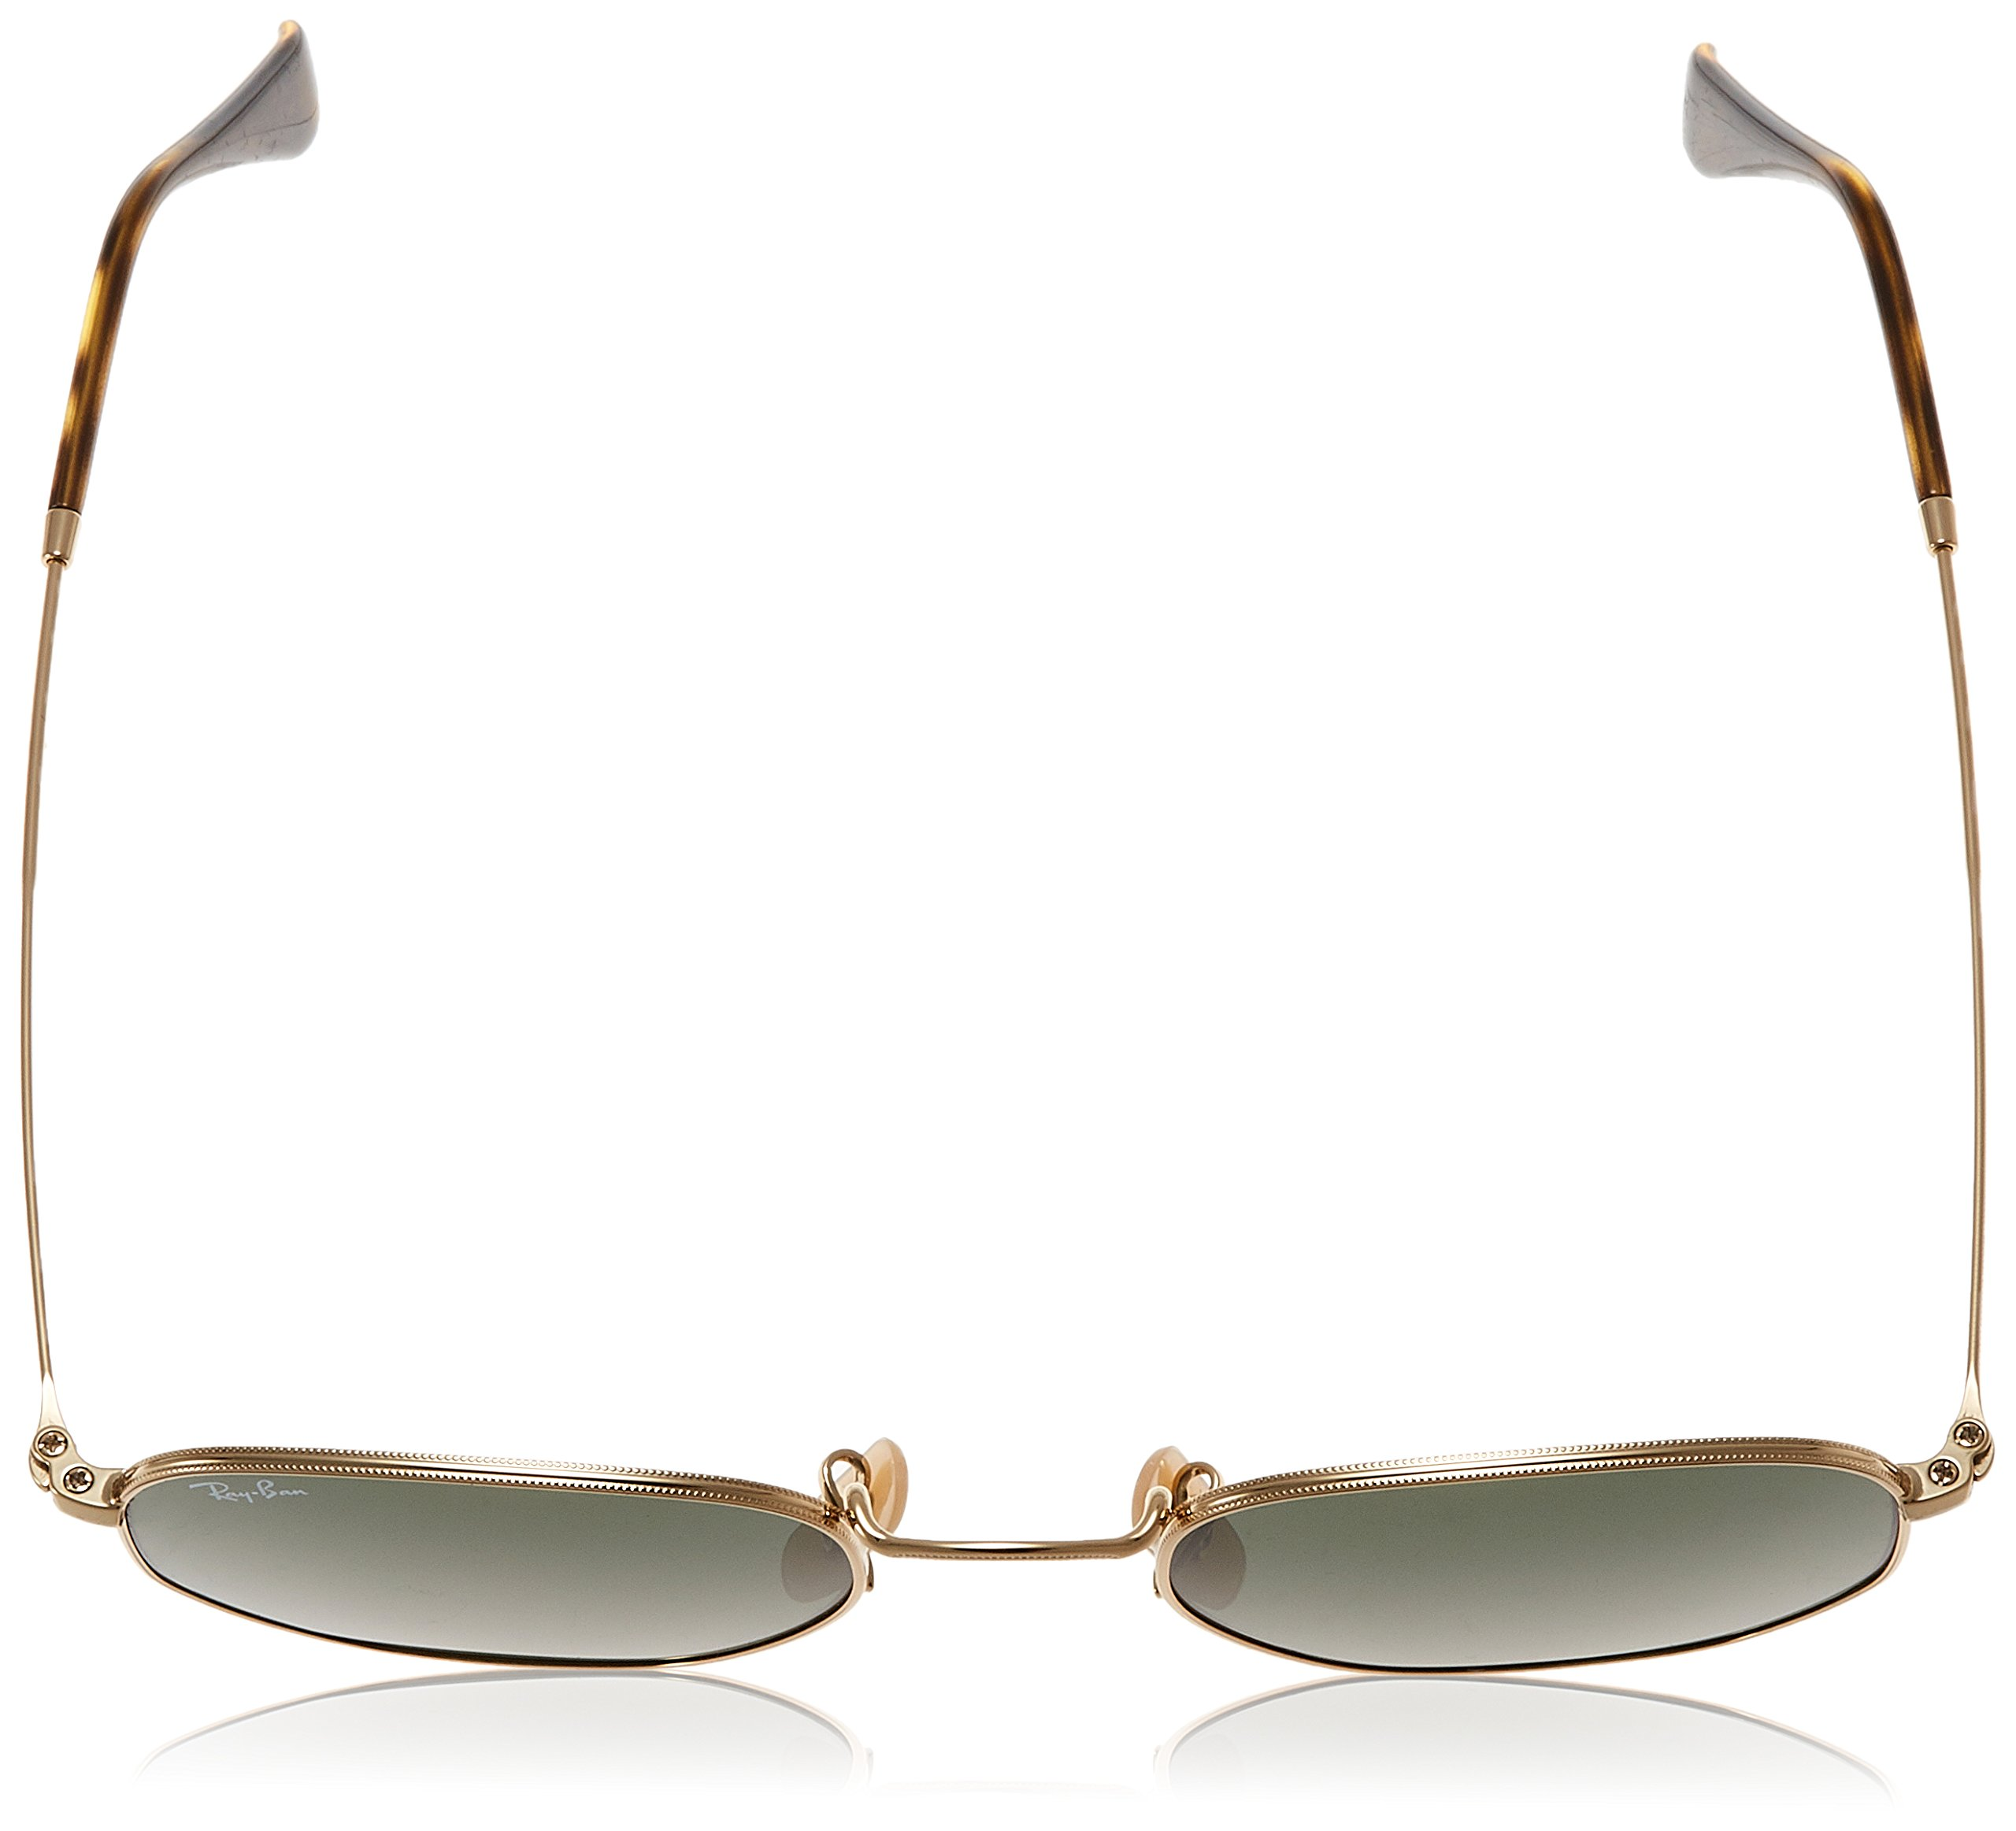 Ray-Ban Unisex RB3548N Hexagonal Sunglasses - Gold Frame Green Lenses, 51 mm by Ray-Ban (Image #4)